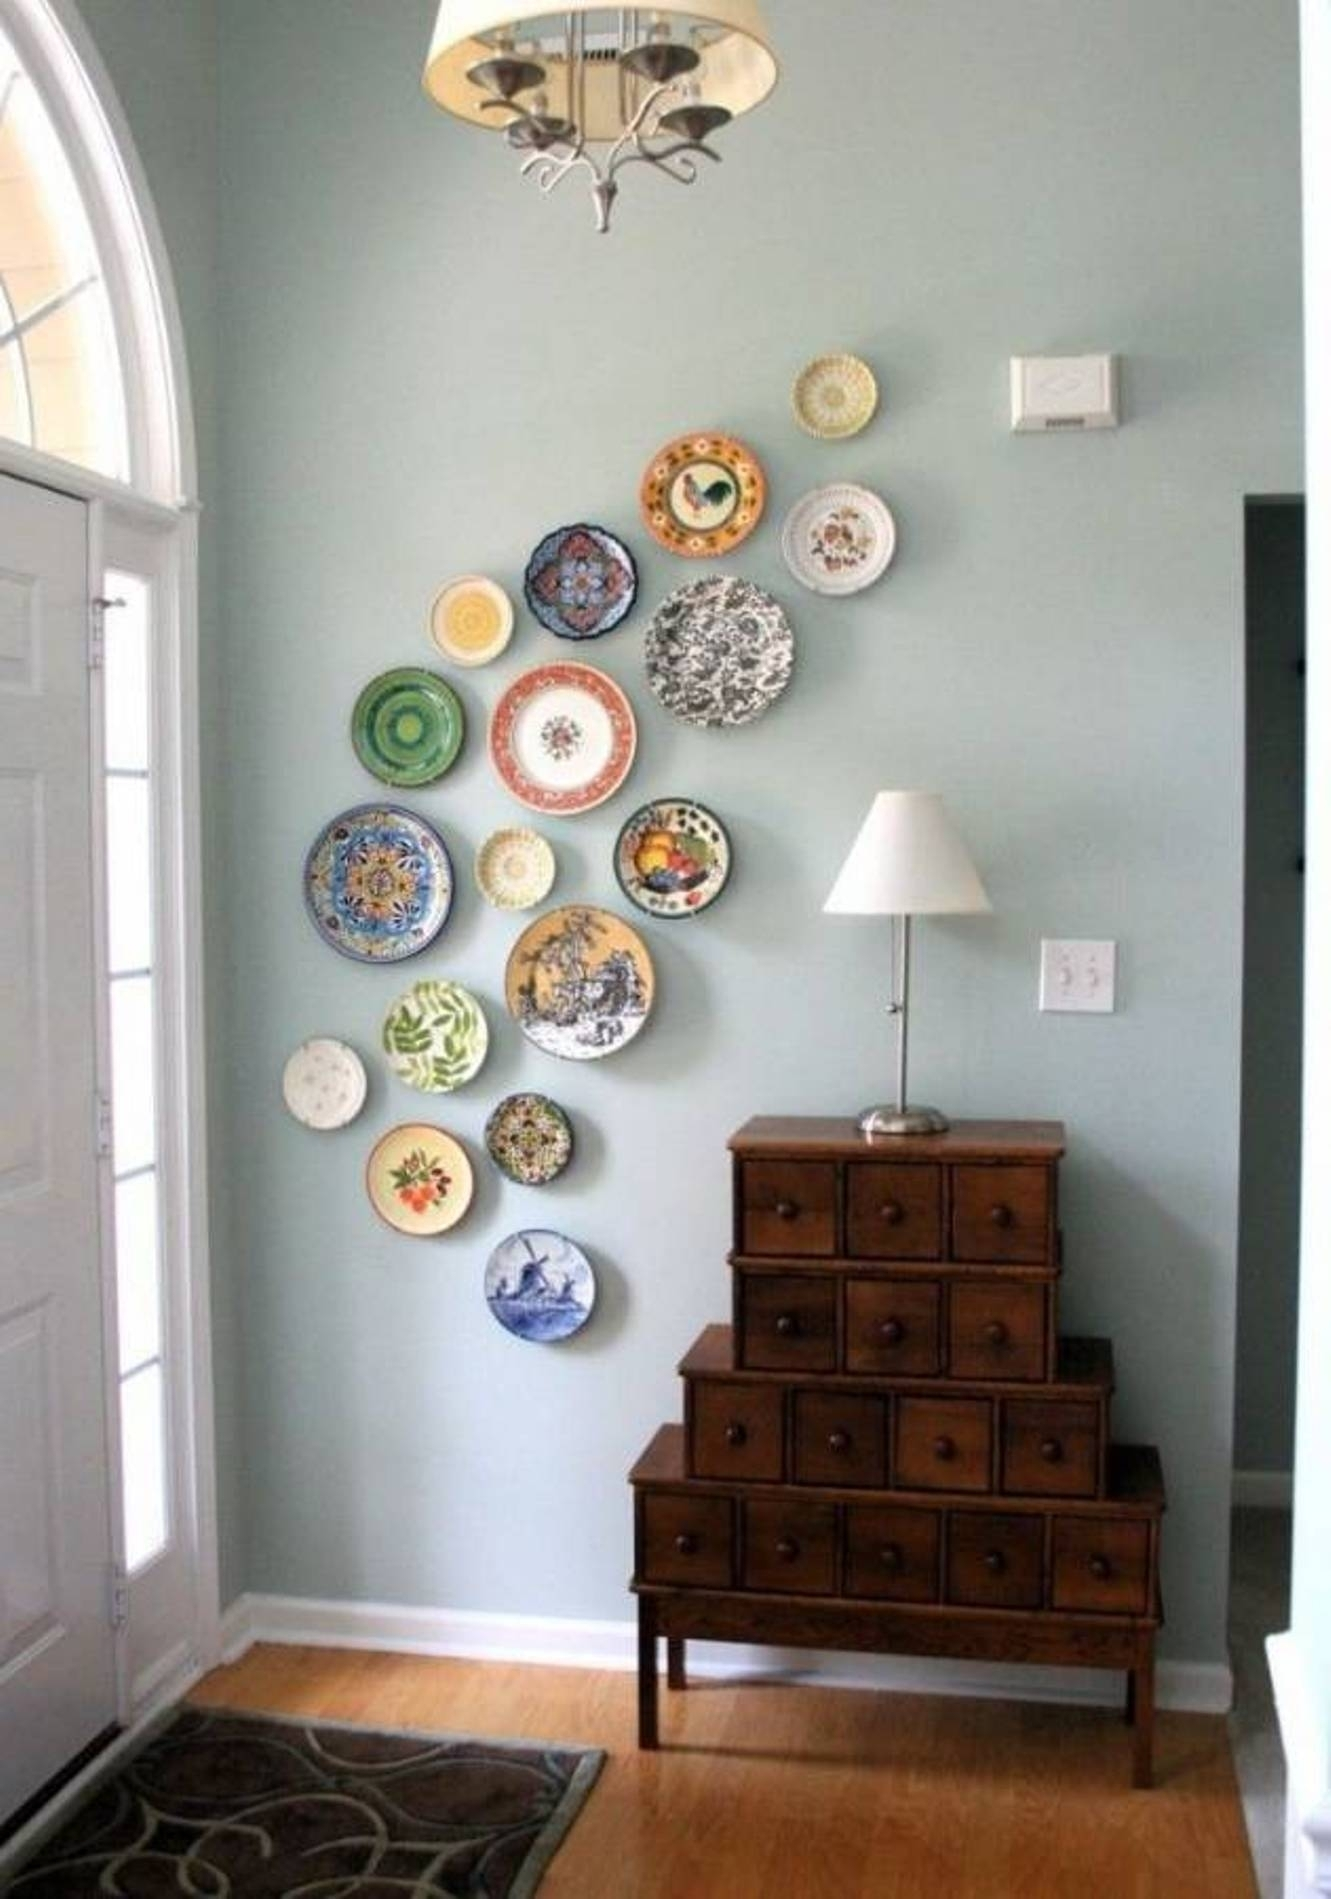 Unique Wall Art Ideas Images | Wall Decorations For 2018 Ceiling Medallion Wall Art (Gallery 14 of 15)